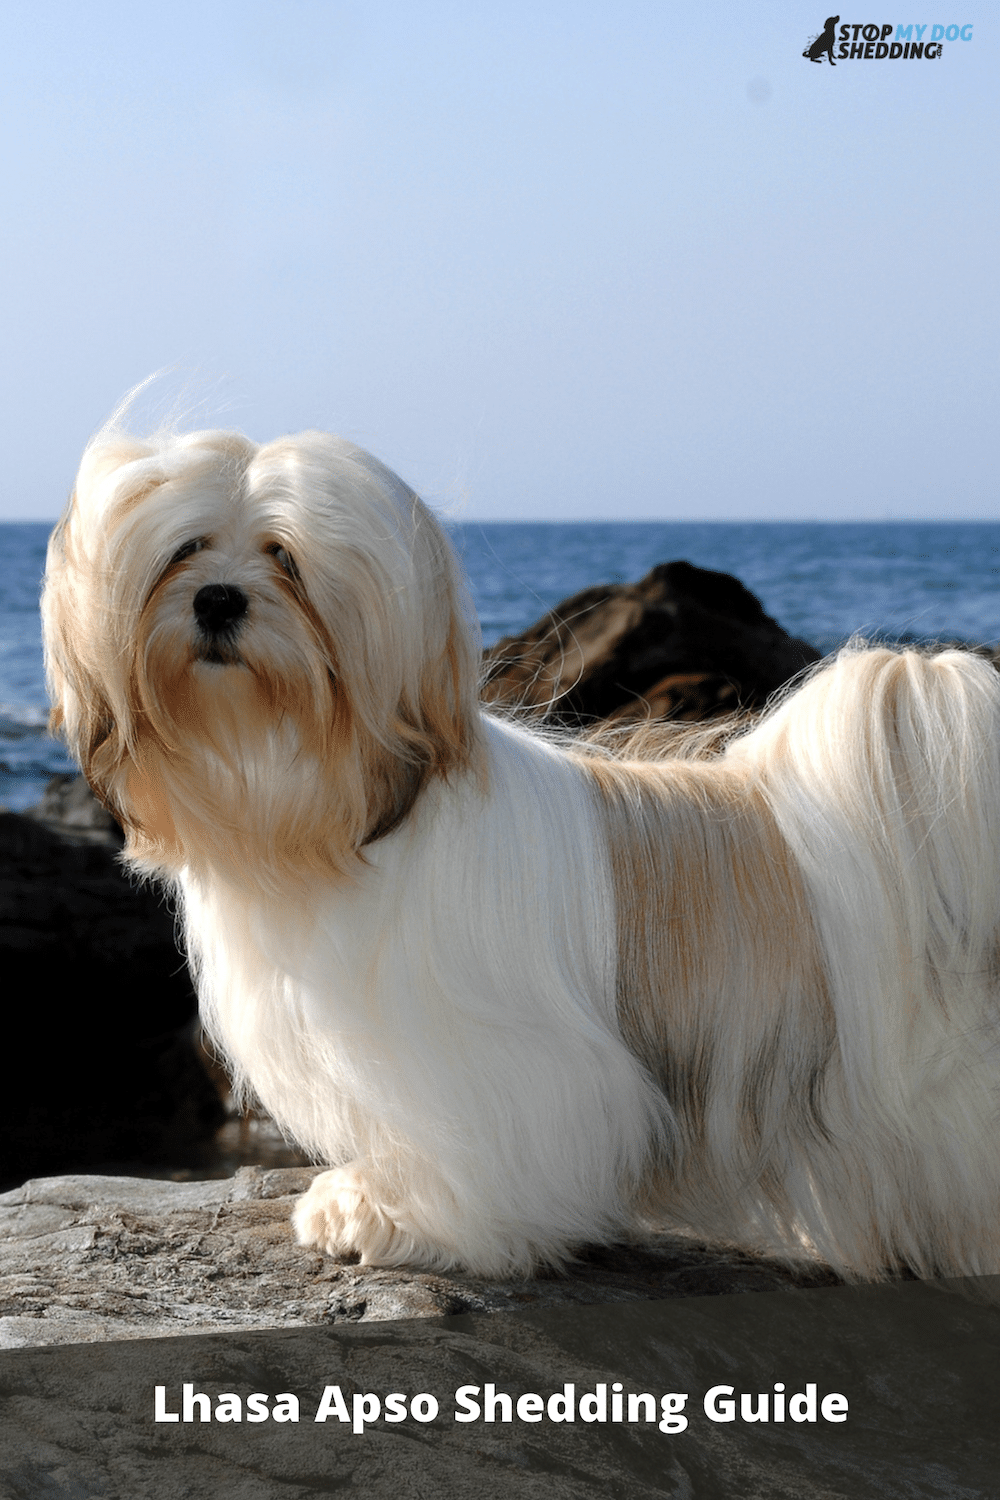 Do Lhasa Apso Dogs Shed? (Shedding and Grooming Guide)